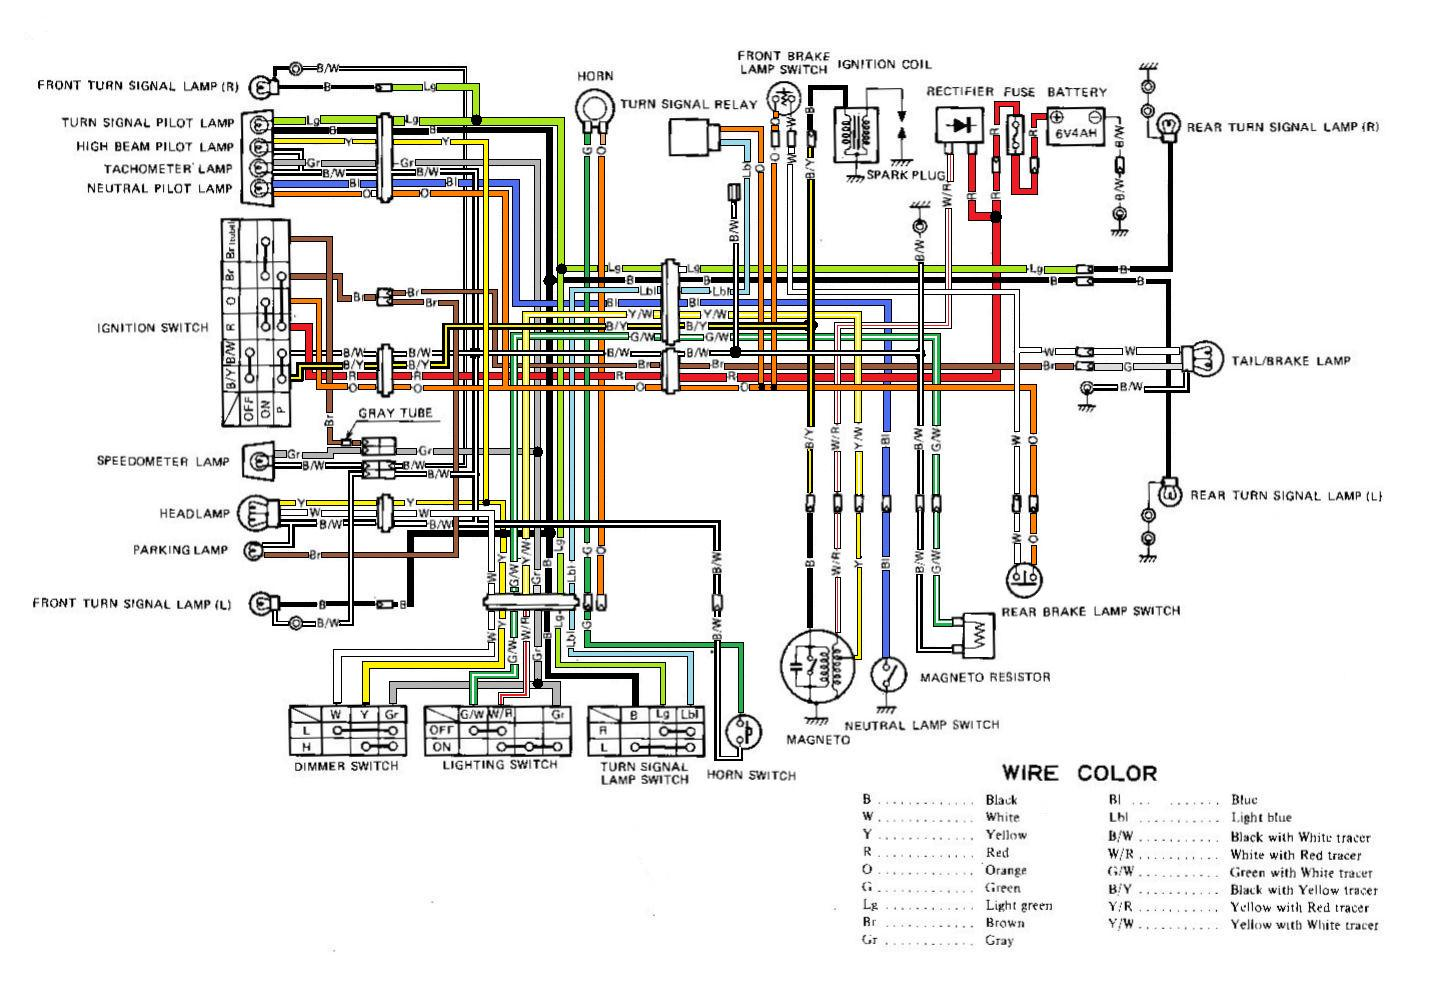 DIAGRAM] Suzuki Rv 125 Wiring Diagram FULL Version HD Quality Wiring Diagram  - SONYWIRINGDIAGRAM.TRIESTELIVE.ITWiring And Fuse Image